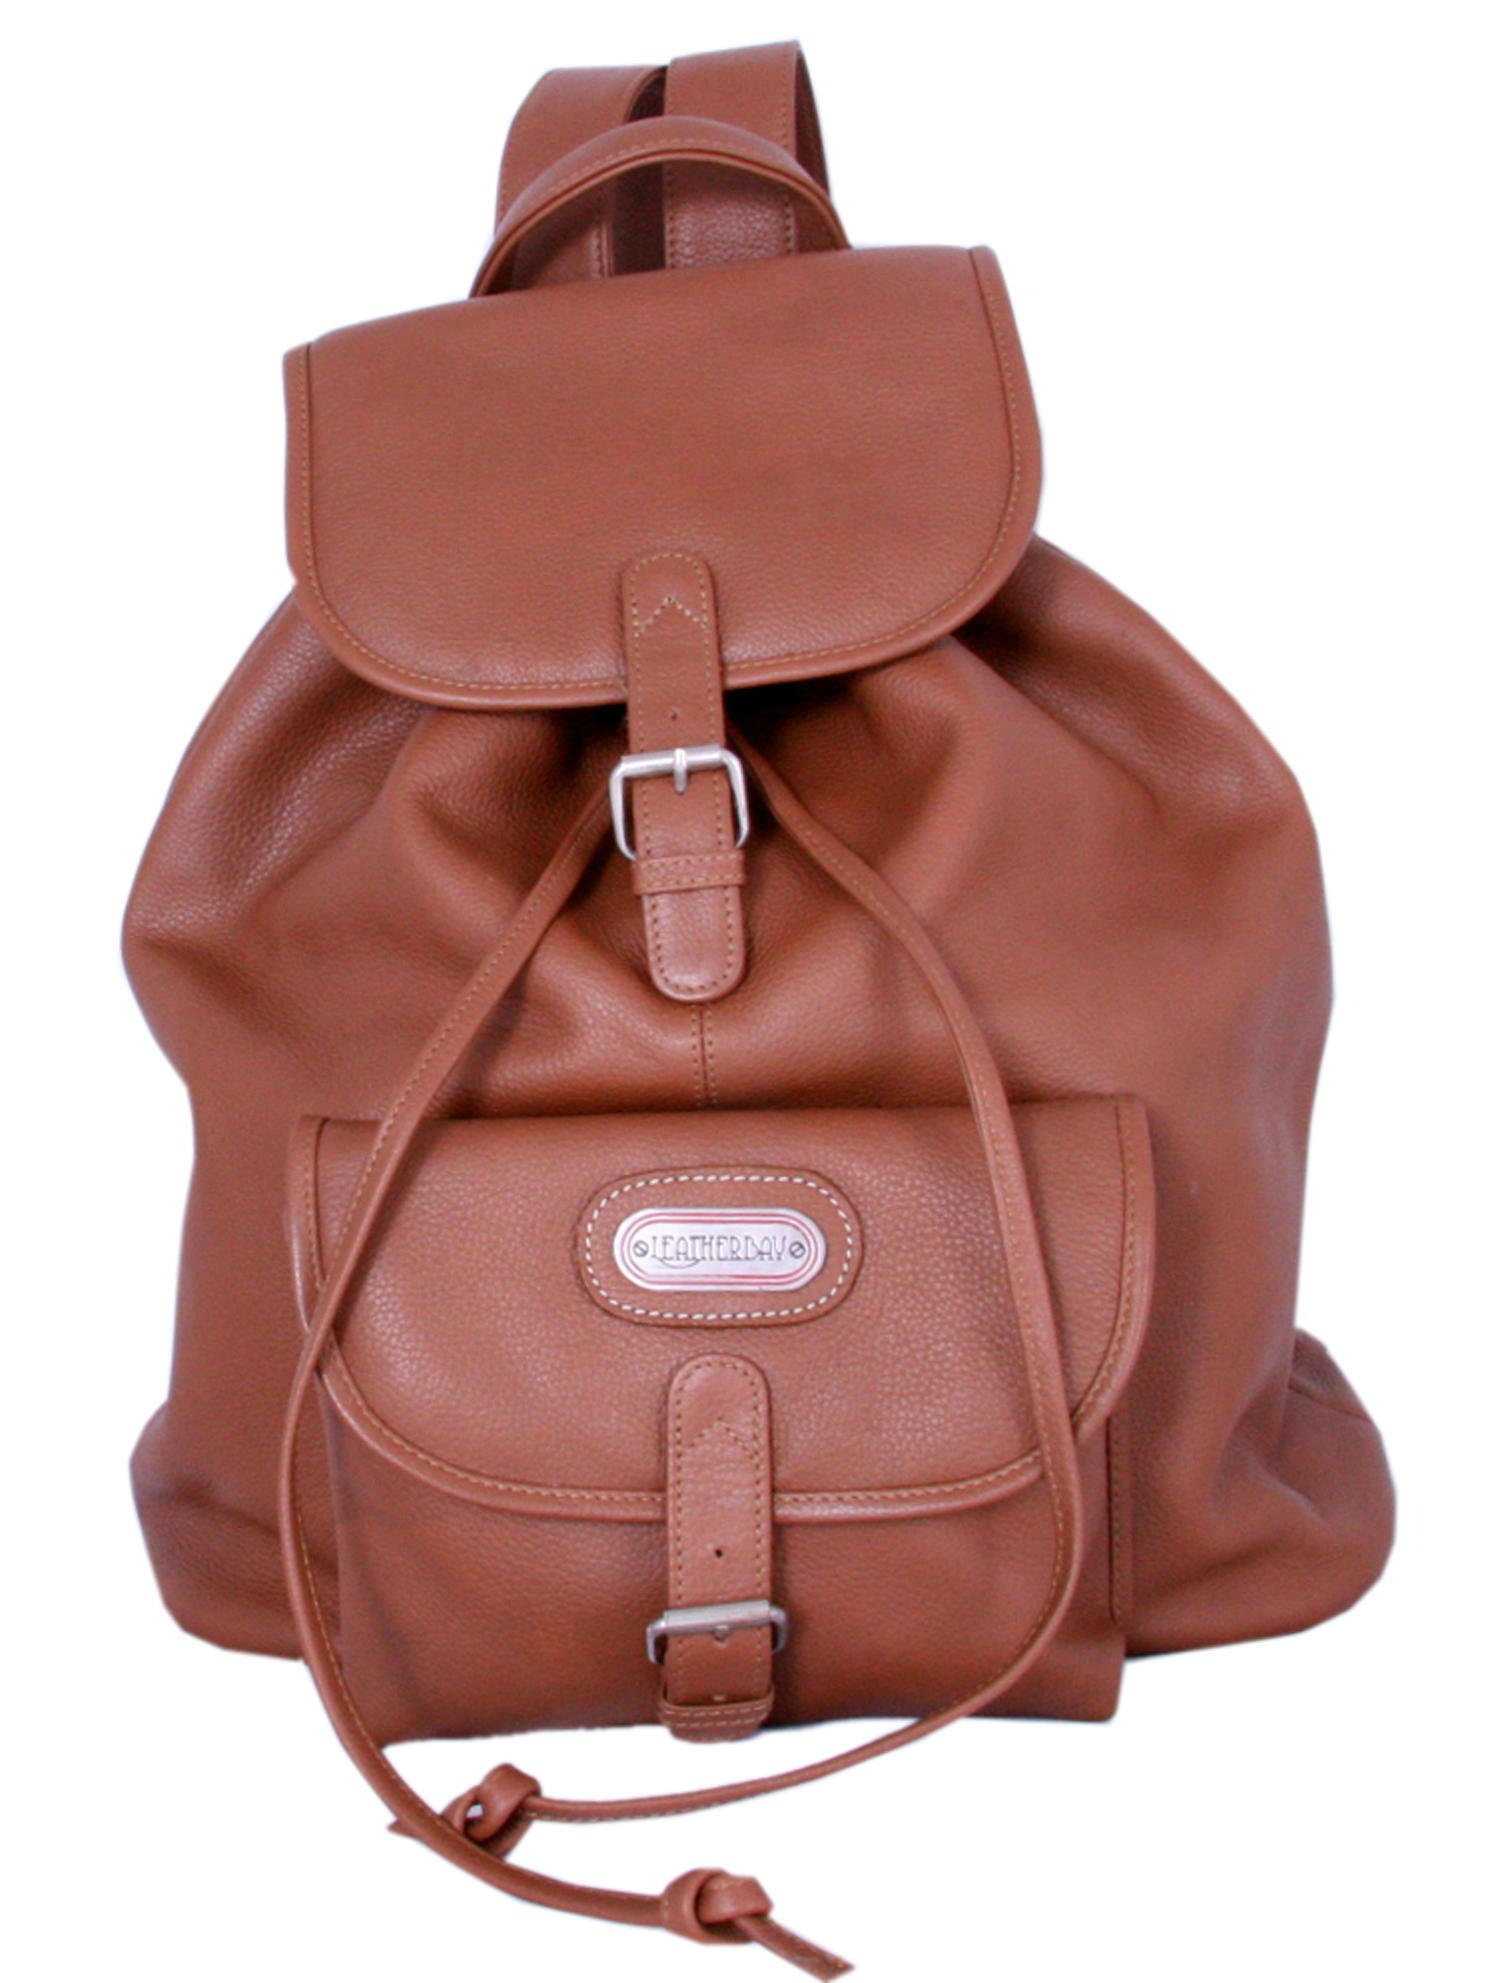 Leatherbay Leather Backpack with Single Pocket,Tan,one size